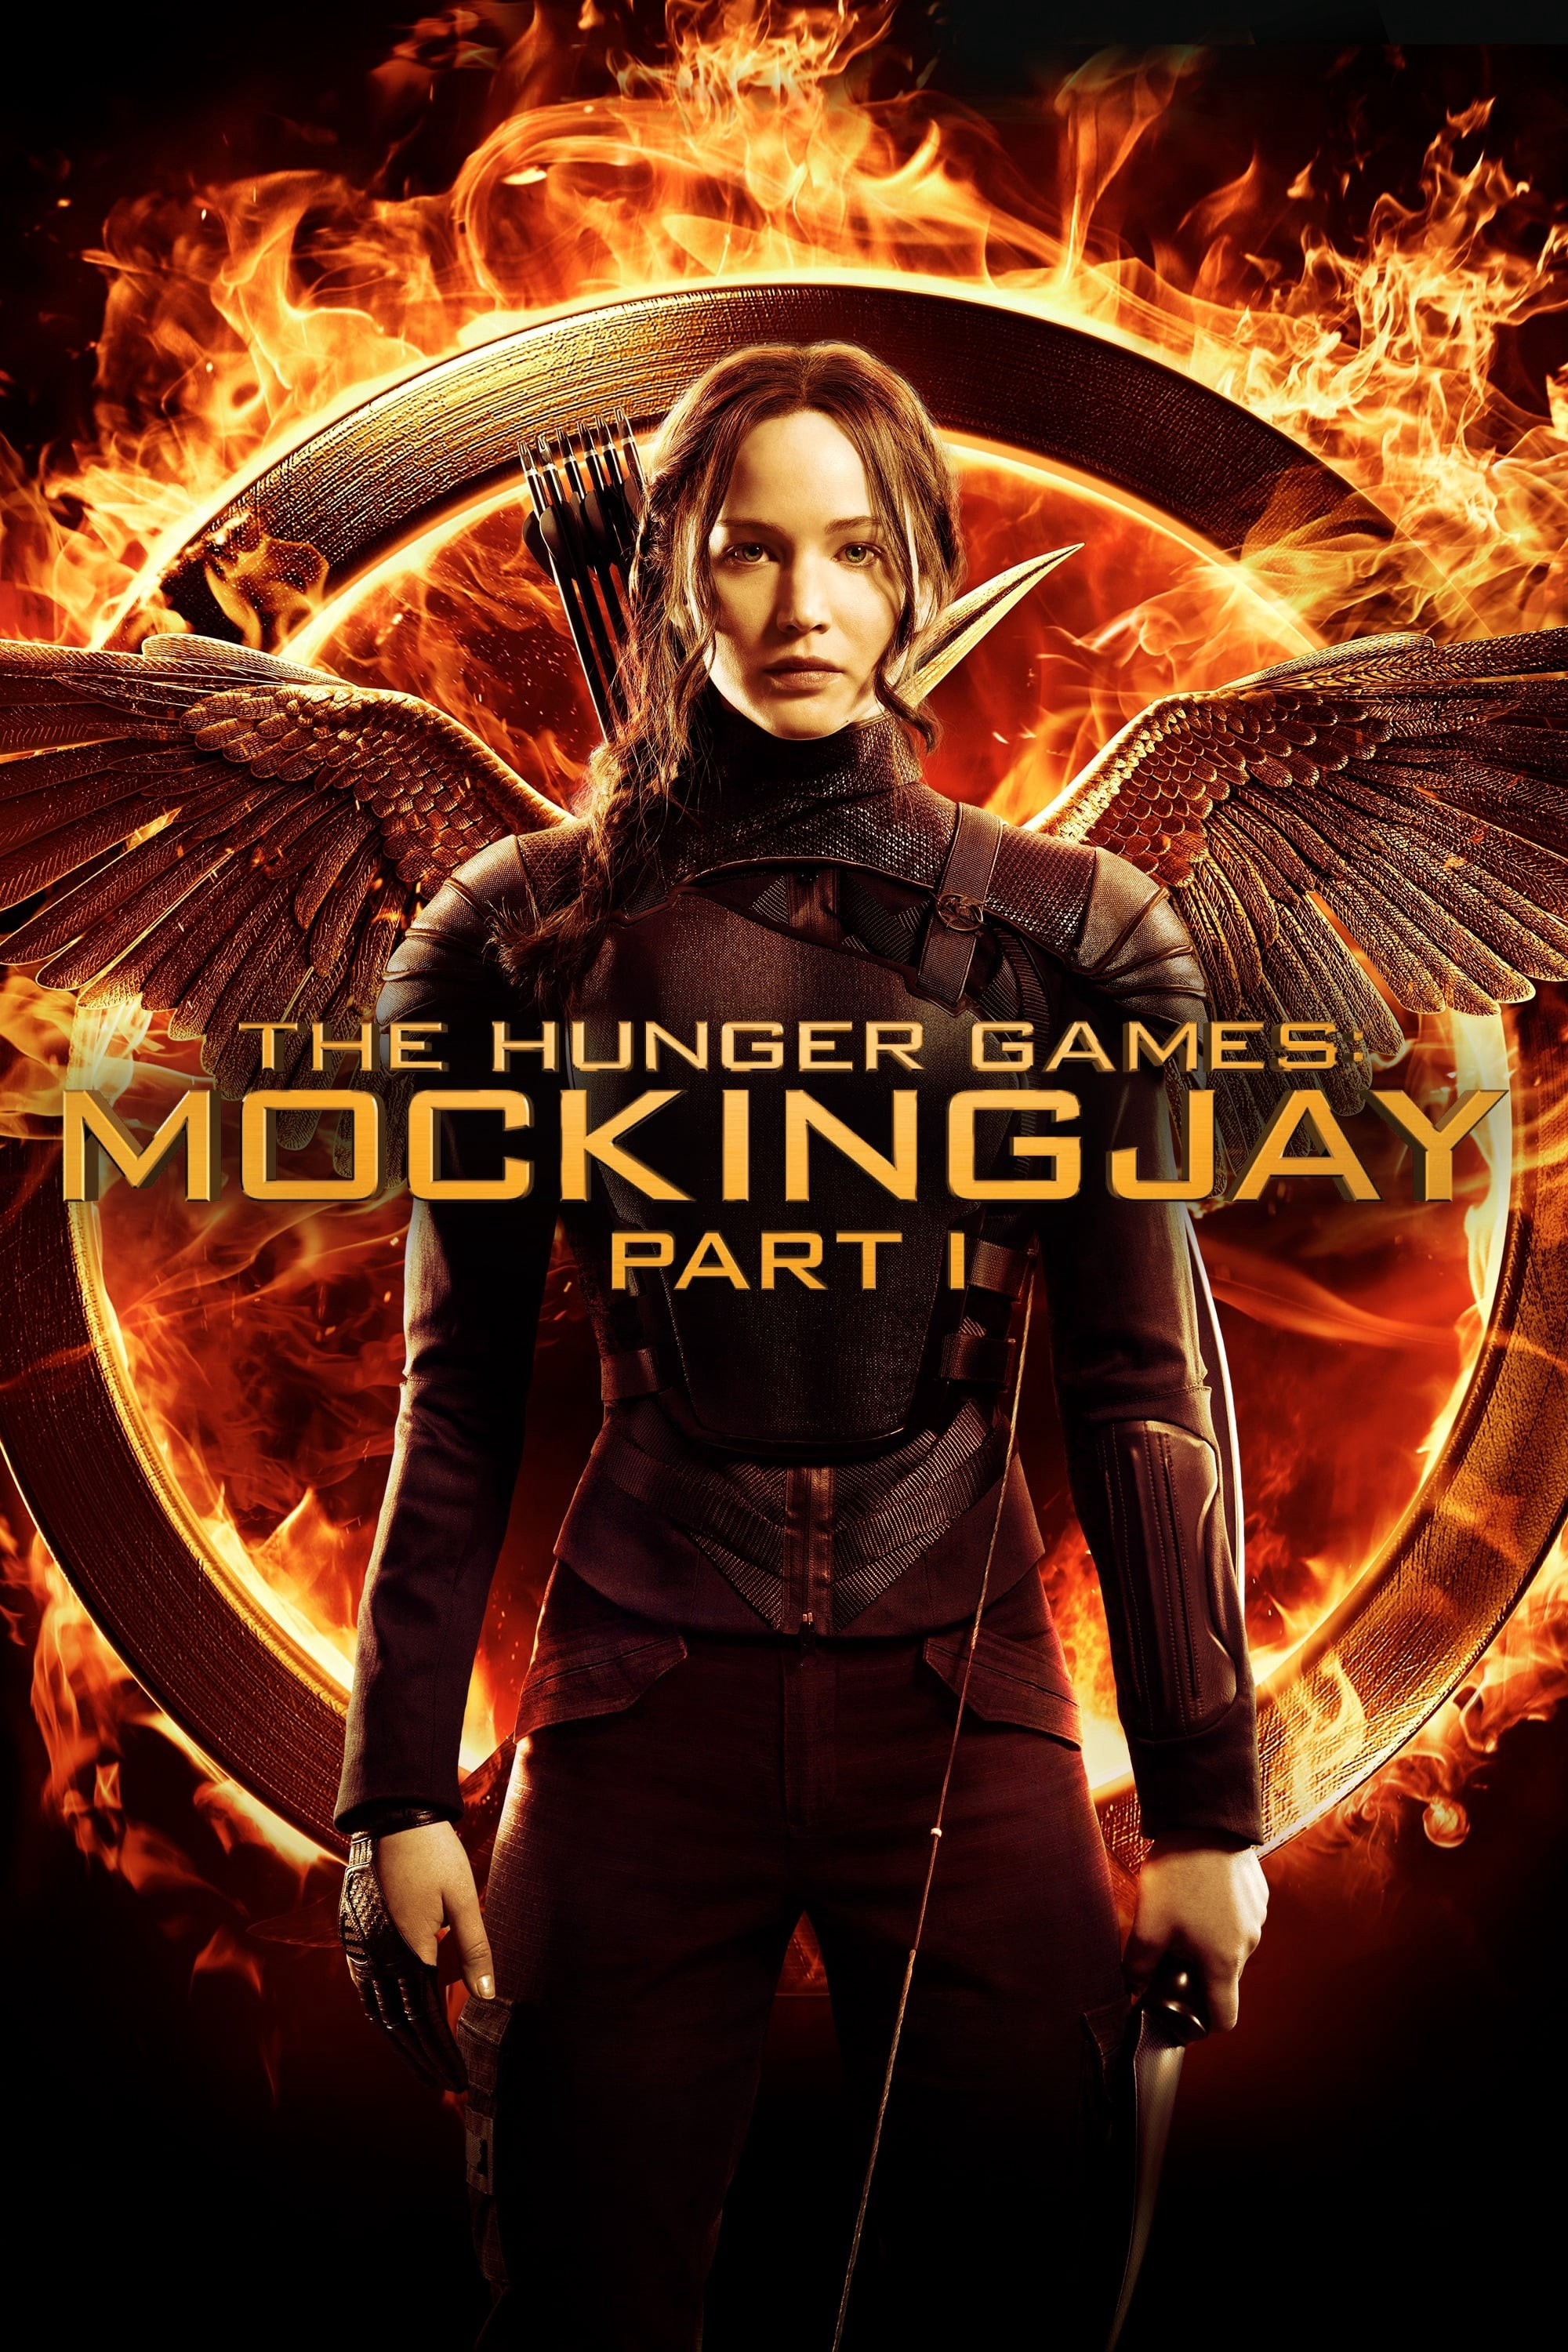 the hunger games free online movie hd